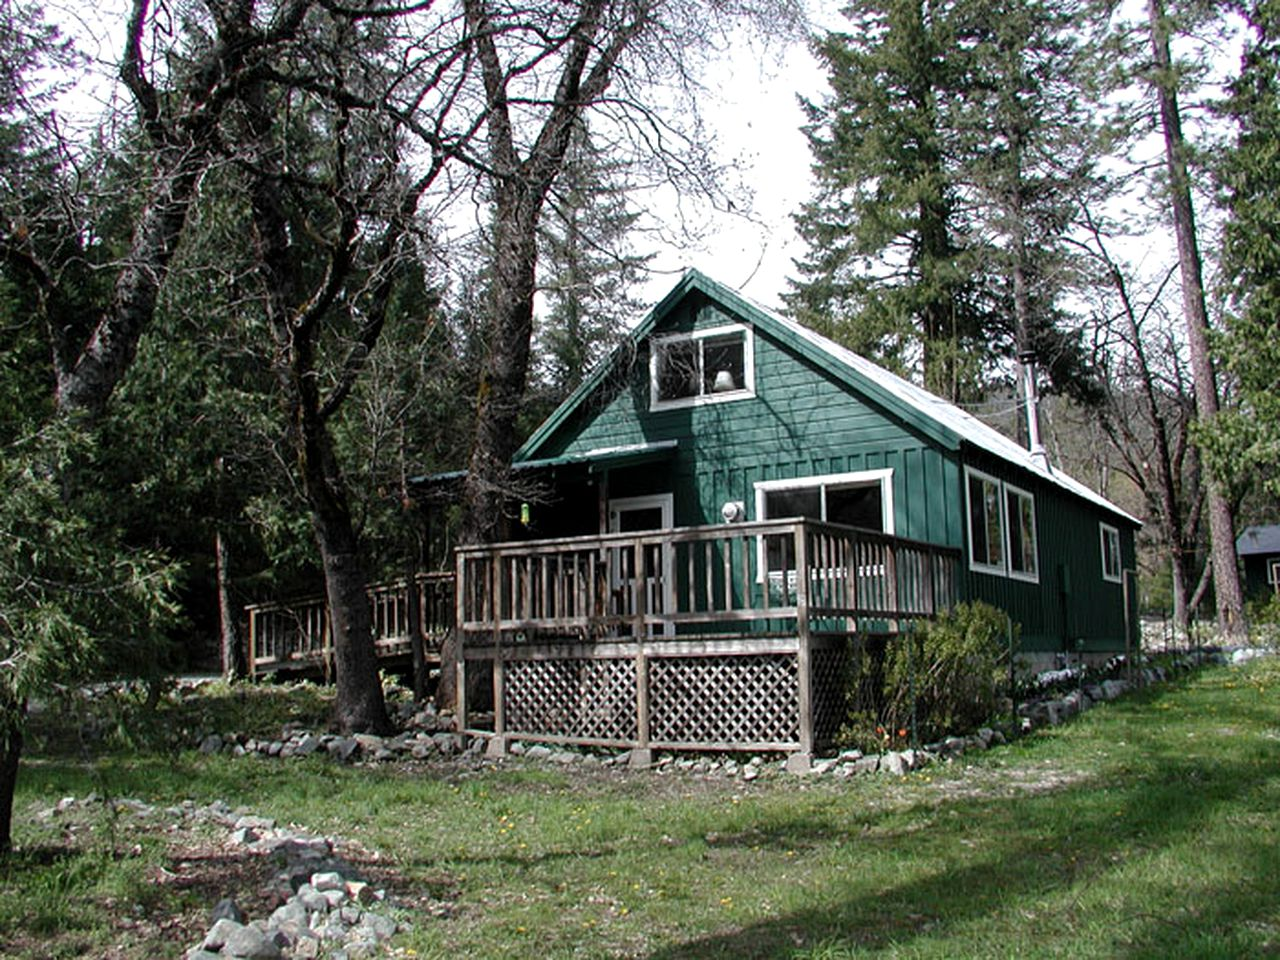 Cabins (Trinity Center, California, United States)